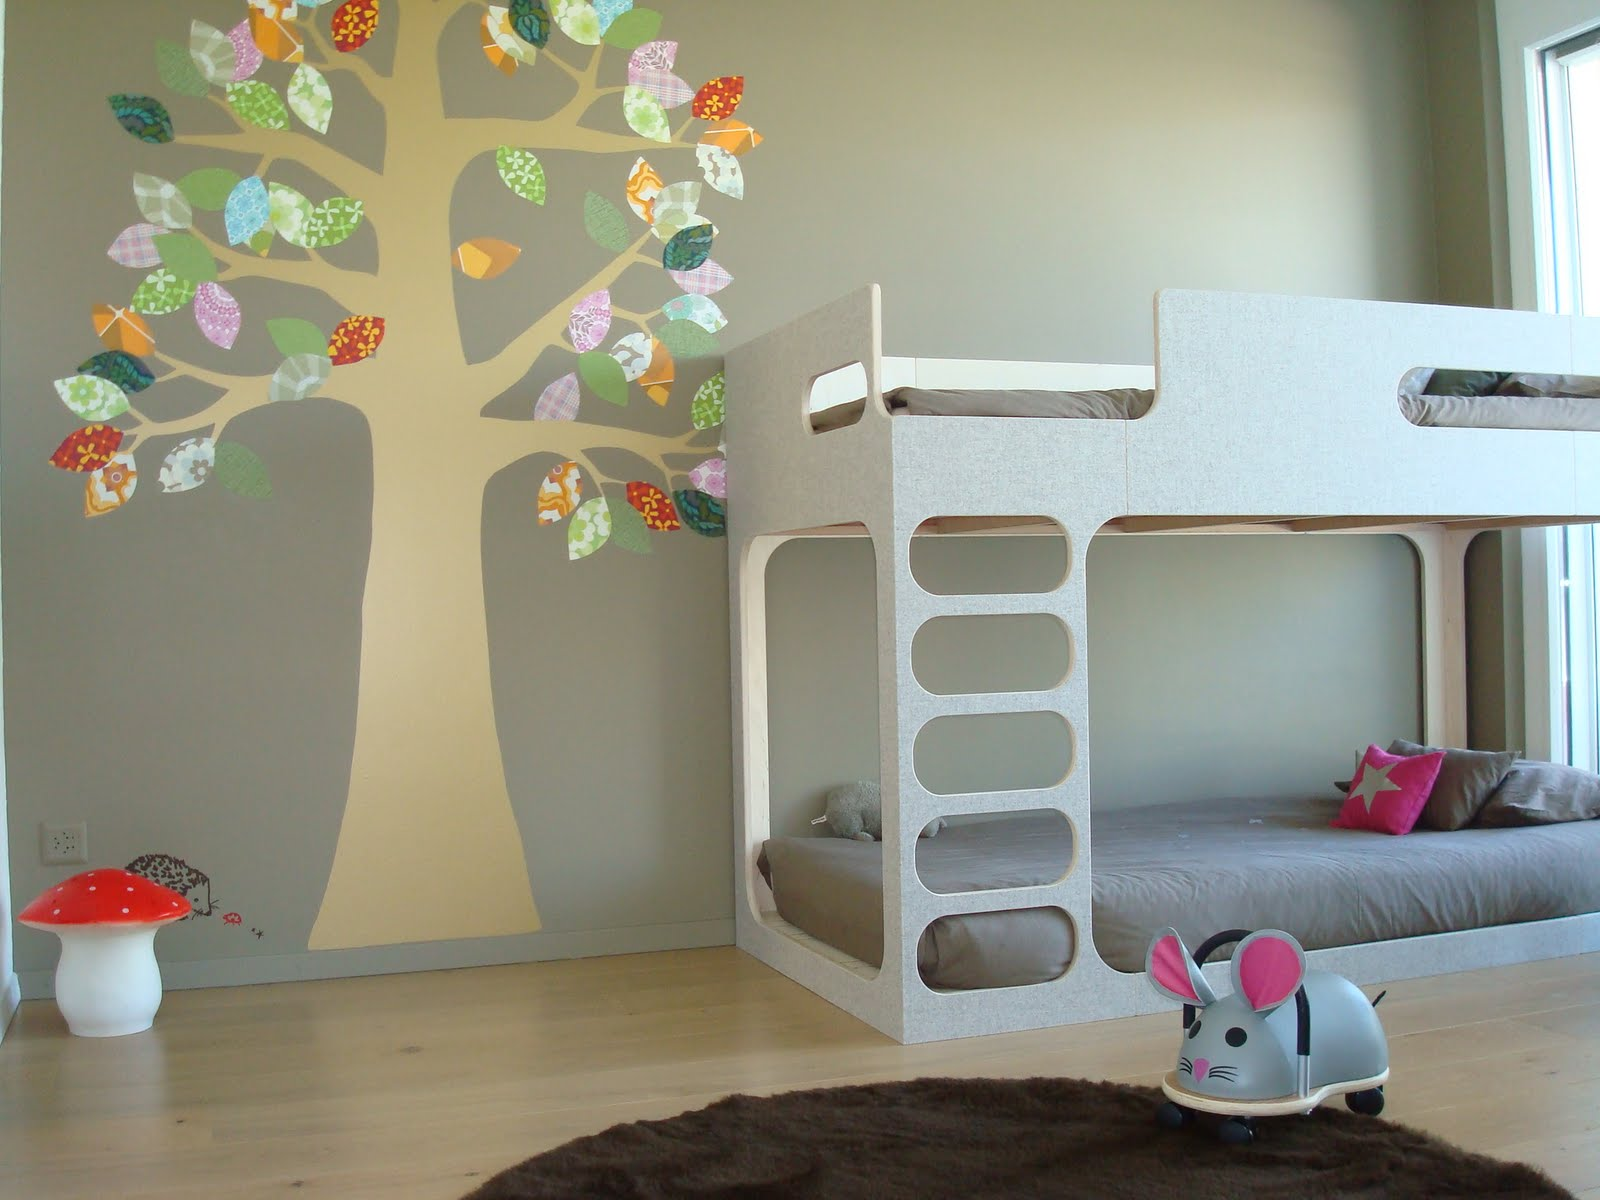 Childrens bedroom wallpaper ideas home decor uk for Accesorios decoracion salon